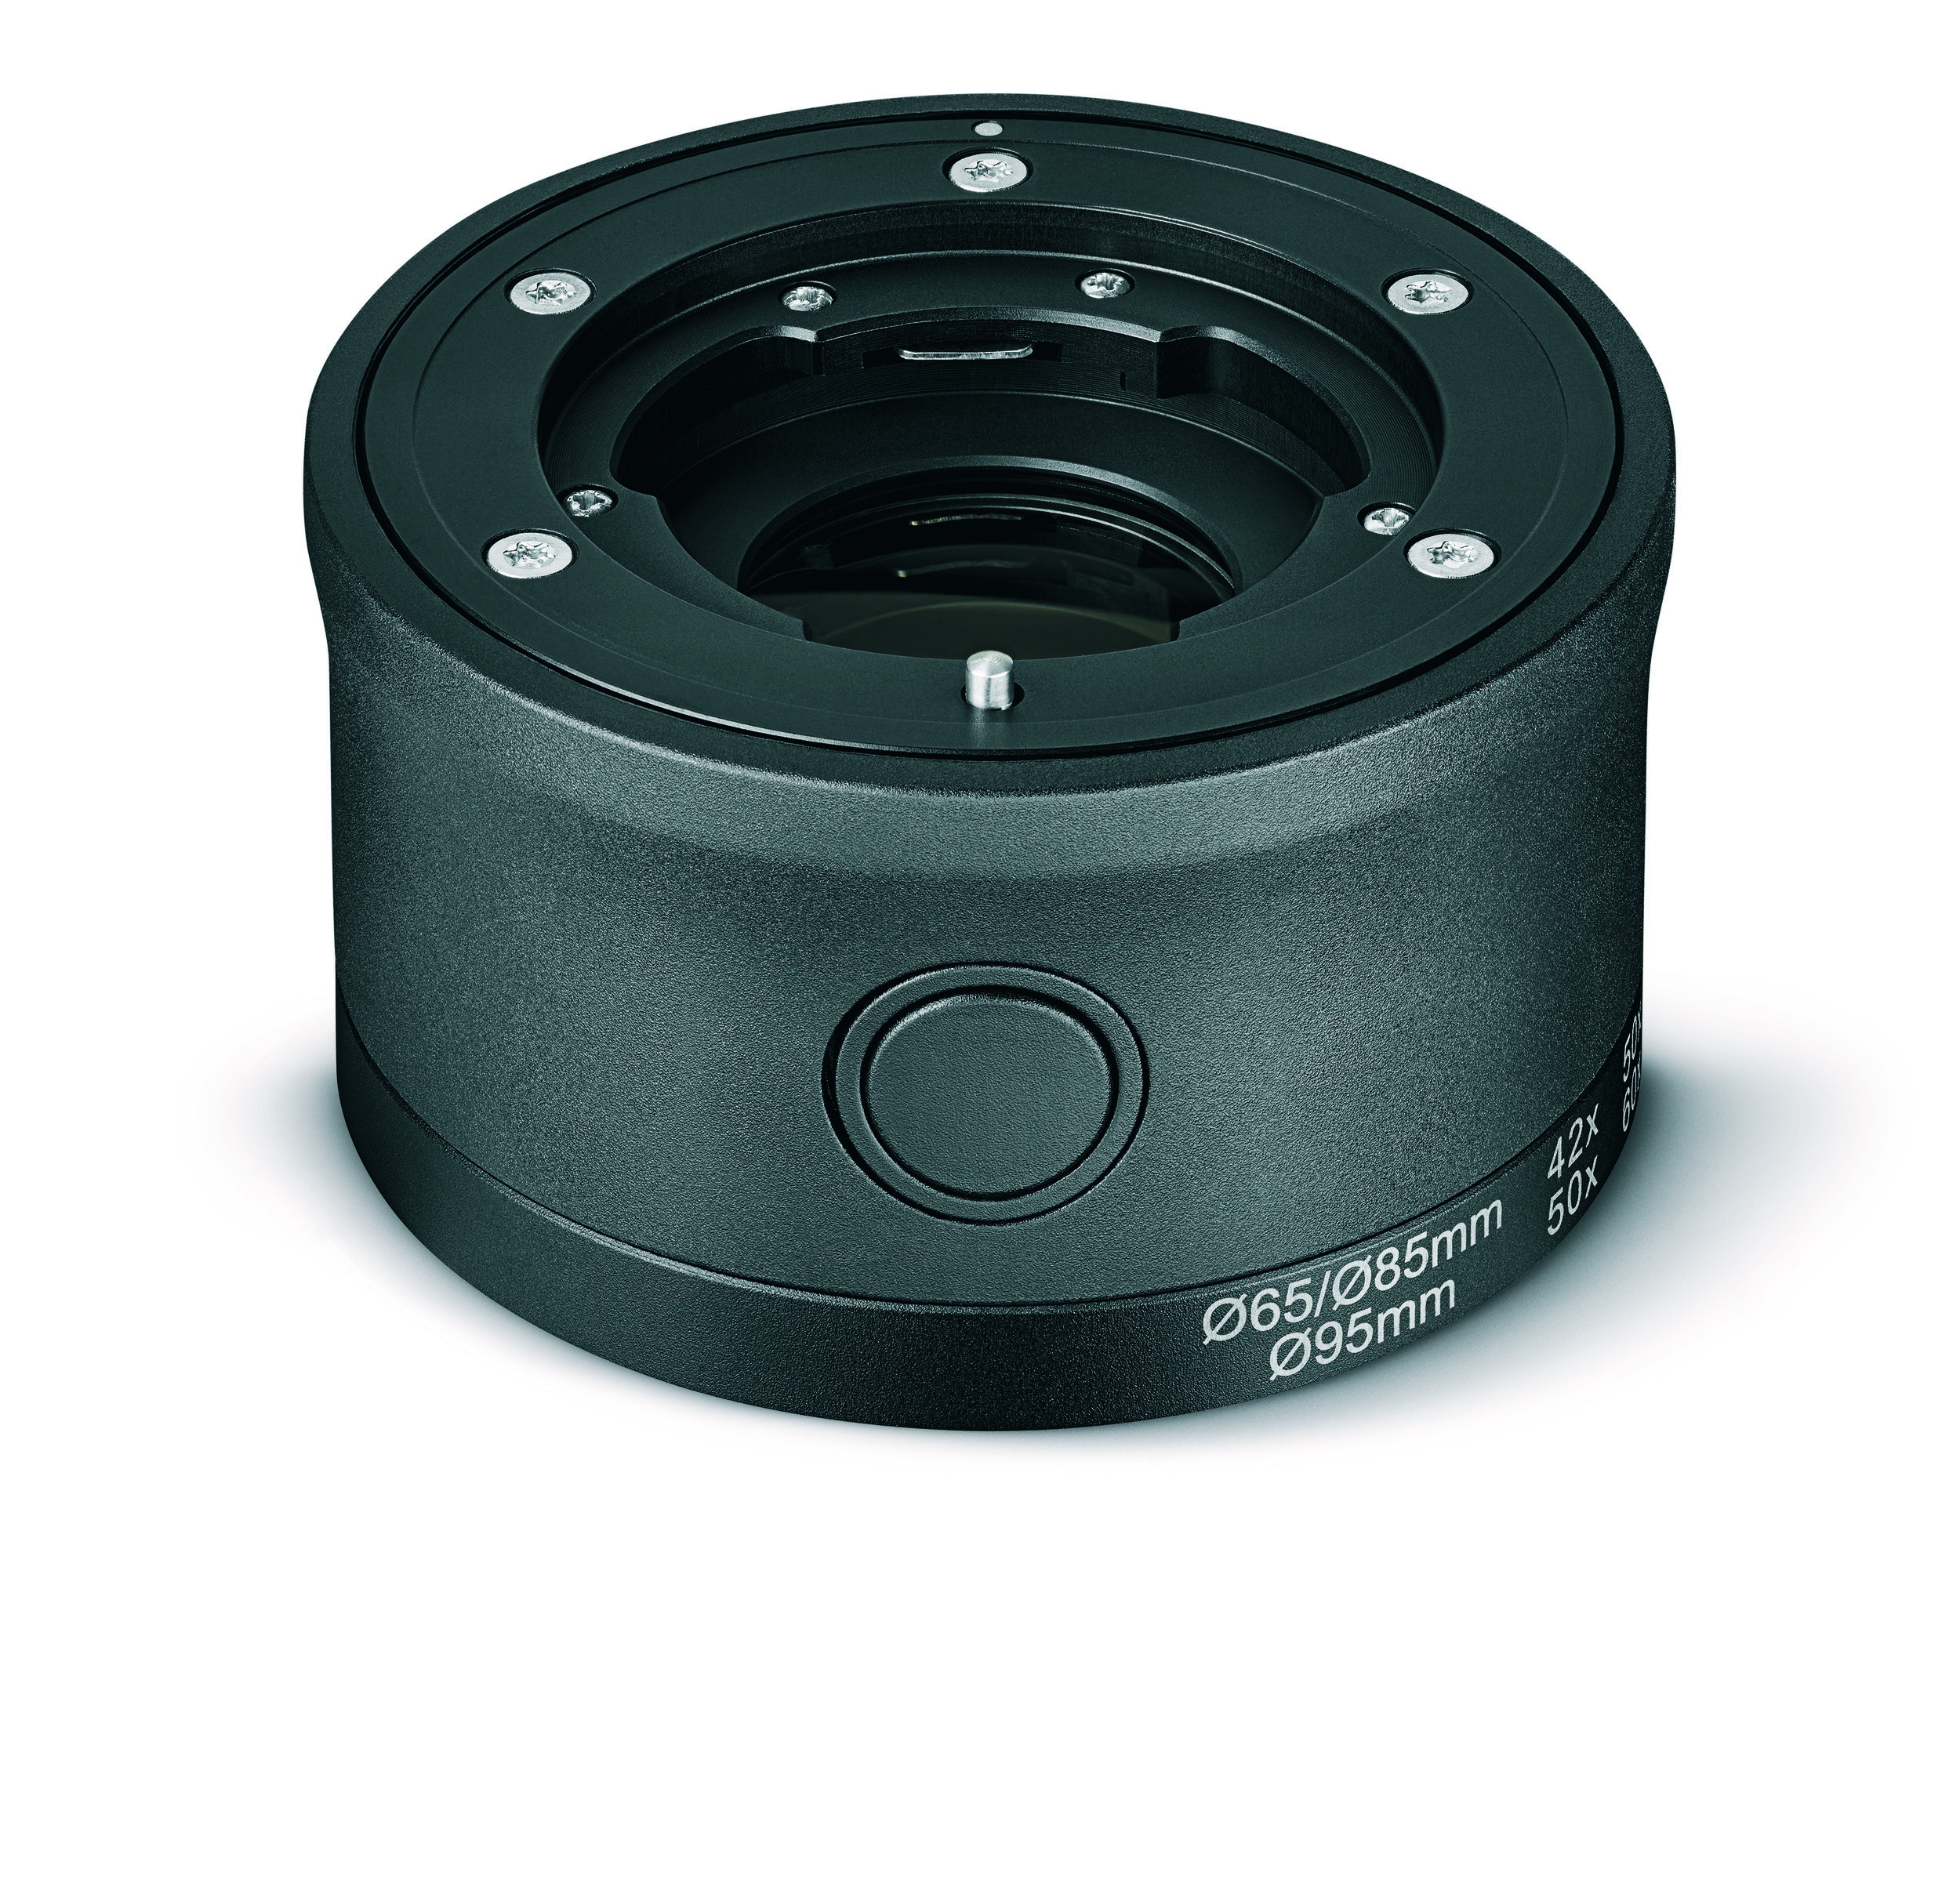 This is the ME 1.7 magnification extender.